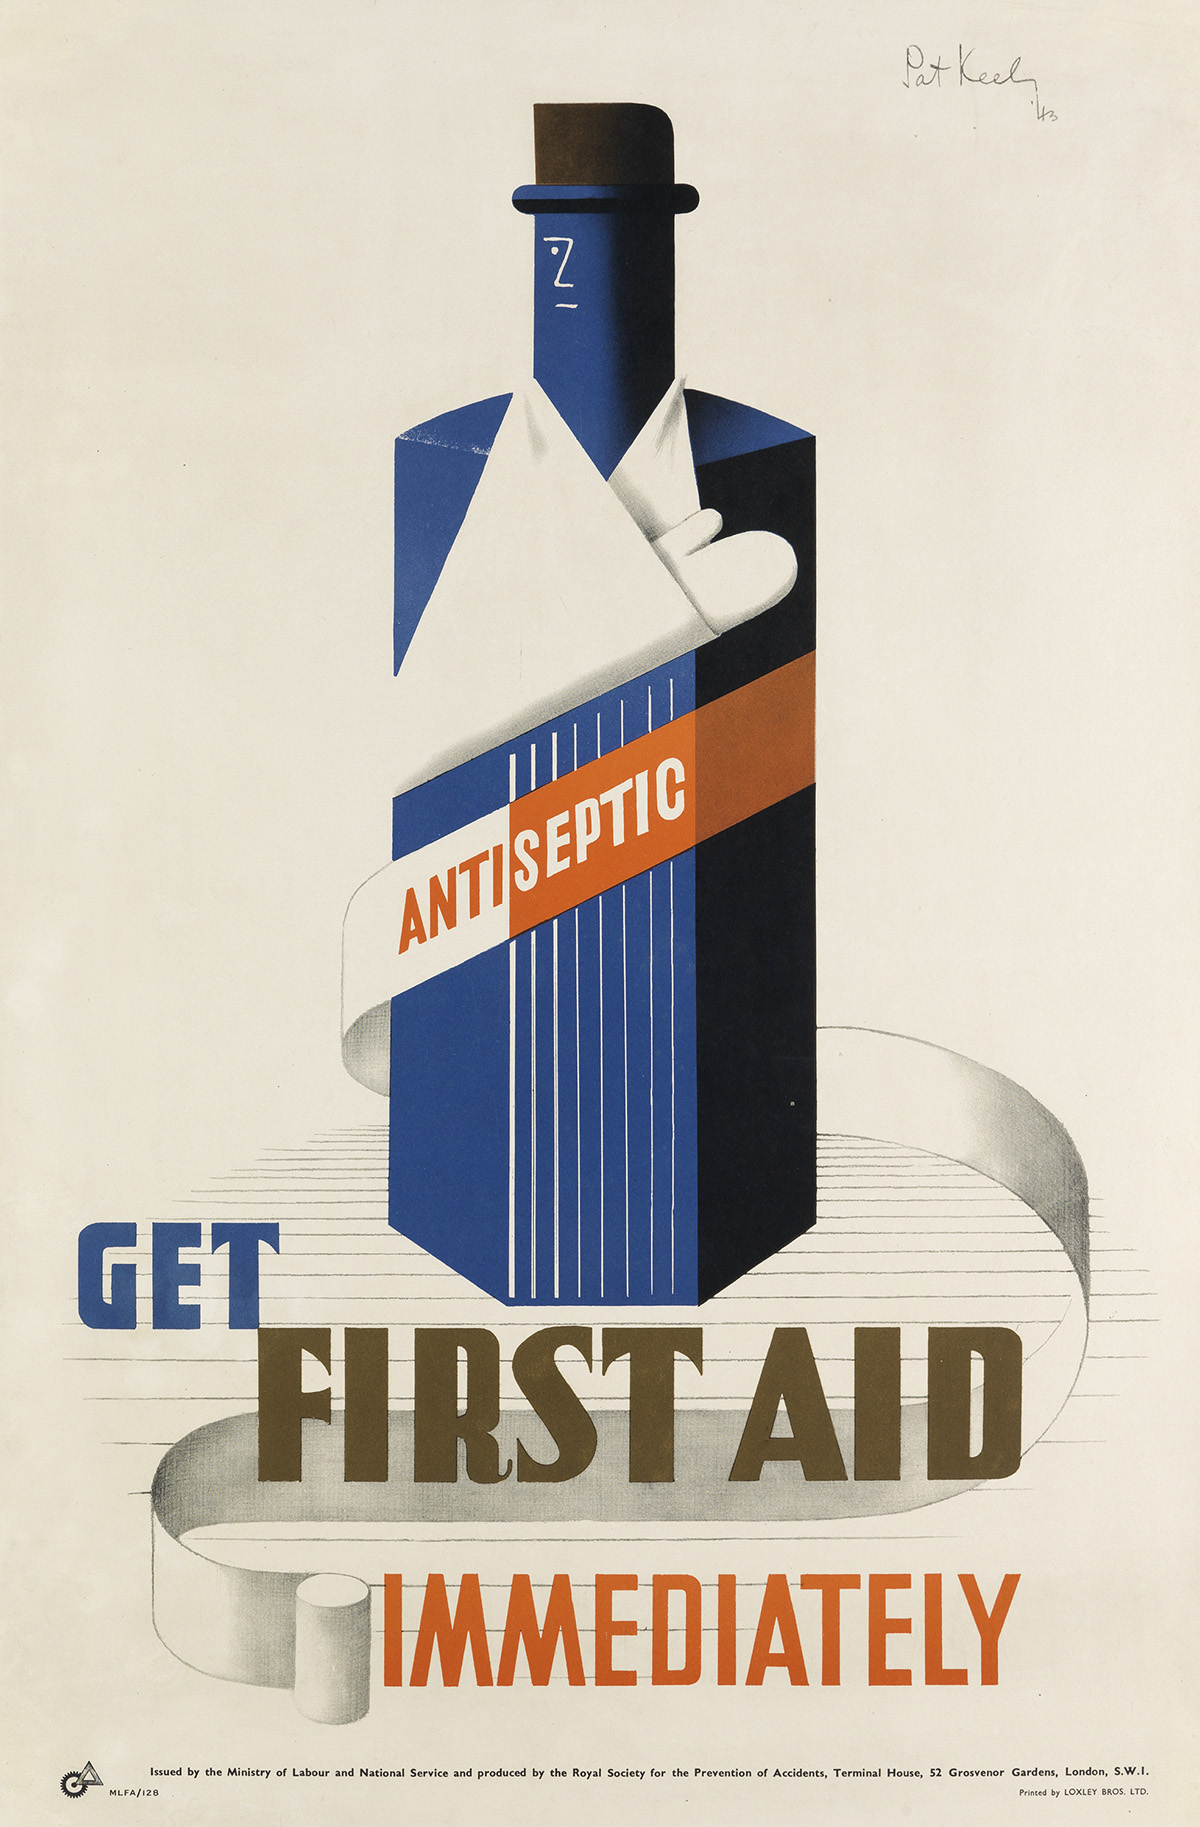 PATRICK-COKAYNE-KEELY-(1901-1970)-GET-FIRST-AID-IMMEDIATELY-